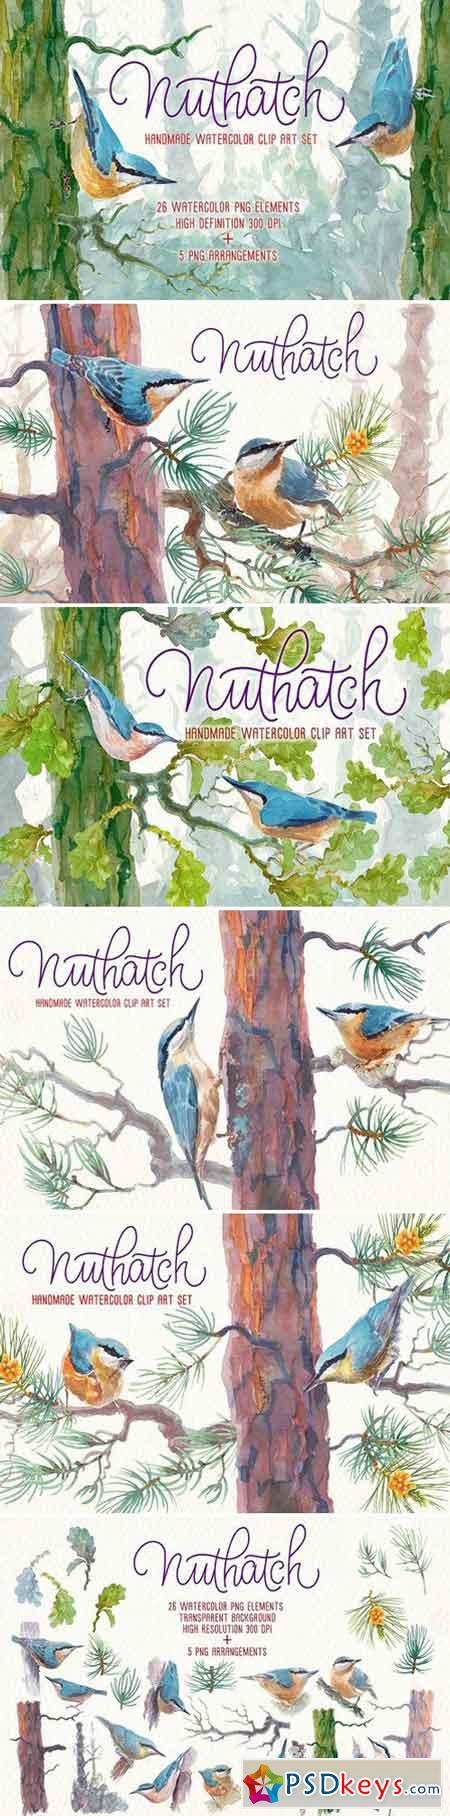 Nuthatch watercolor clipart set 2457736